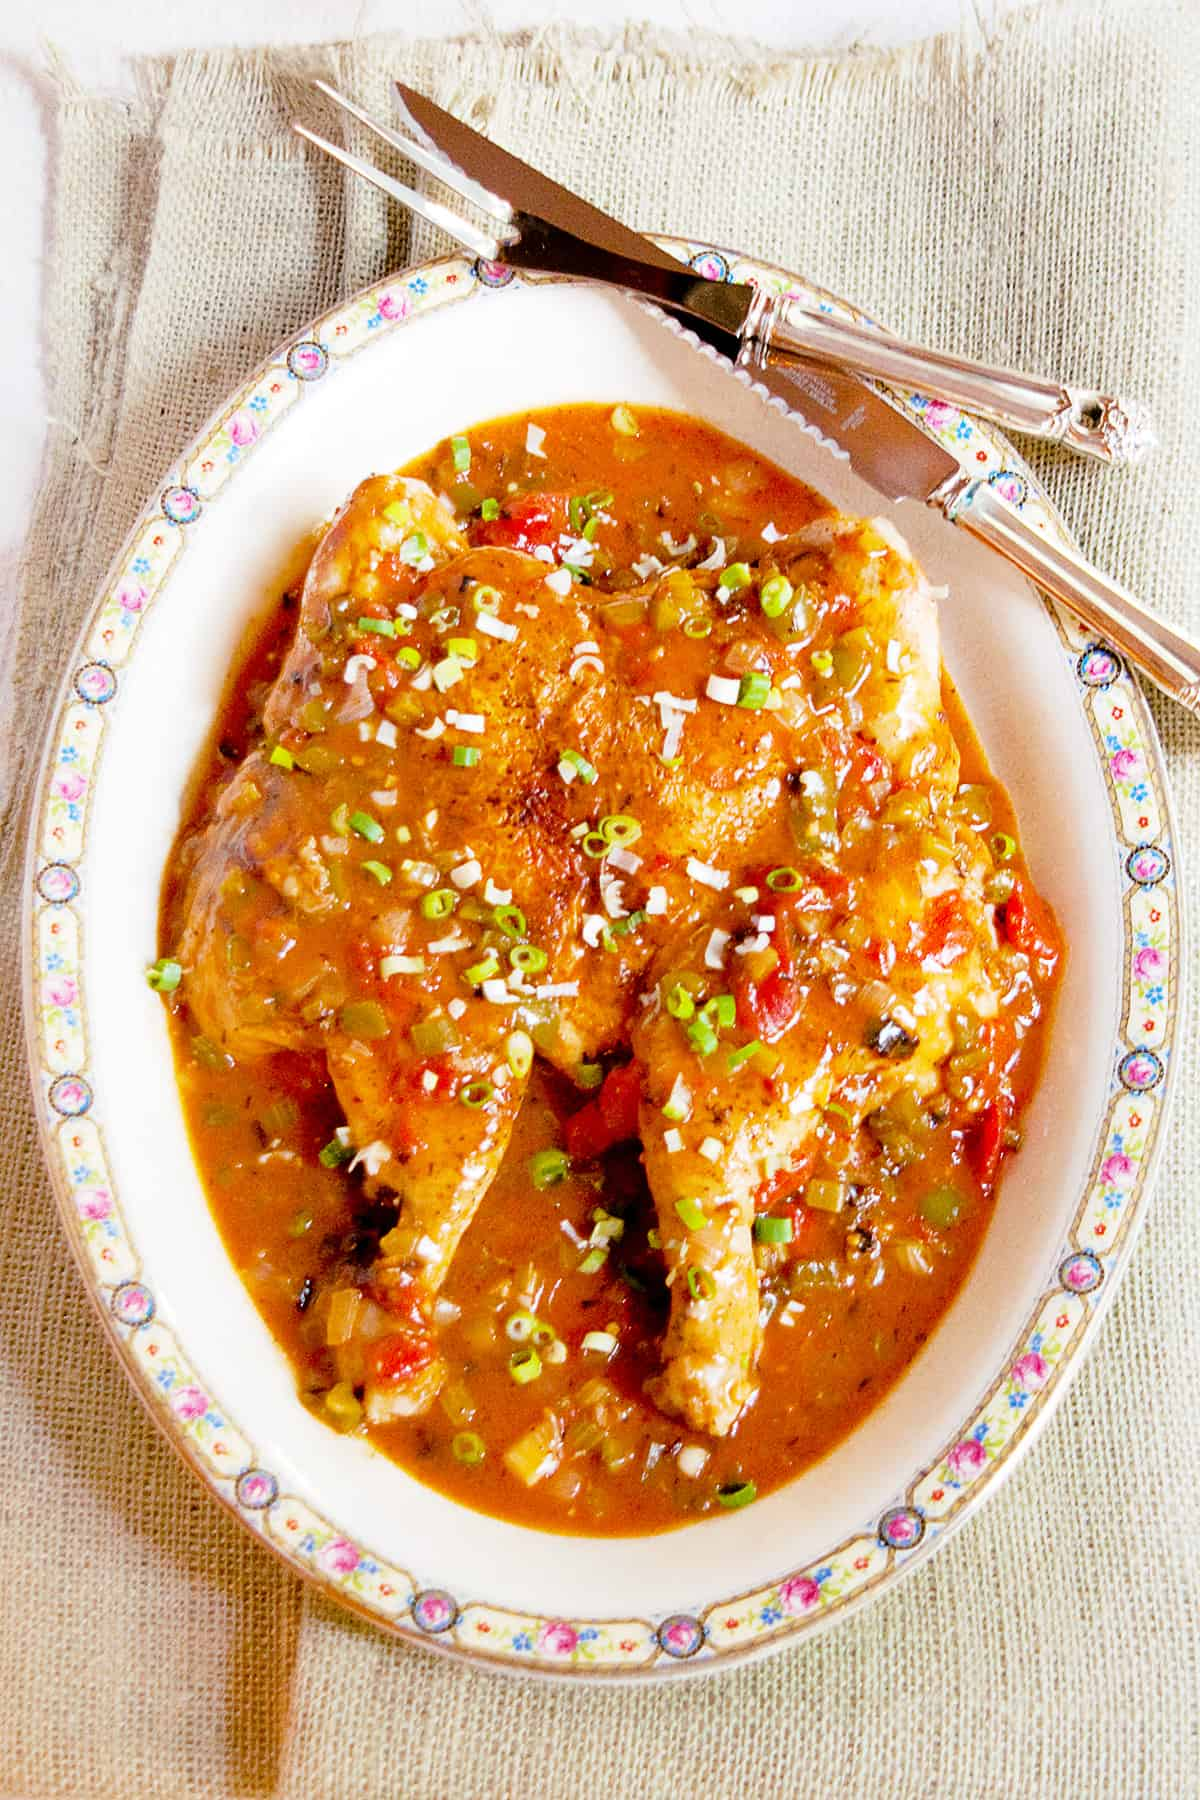 Creole Style Smothered Chicken presented on a large serving platter.